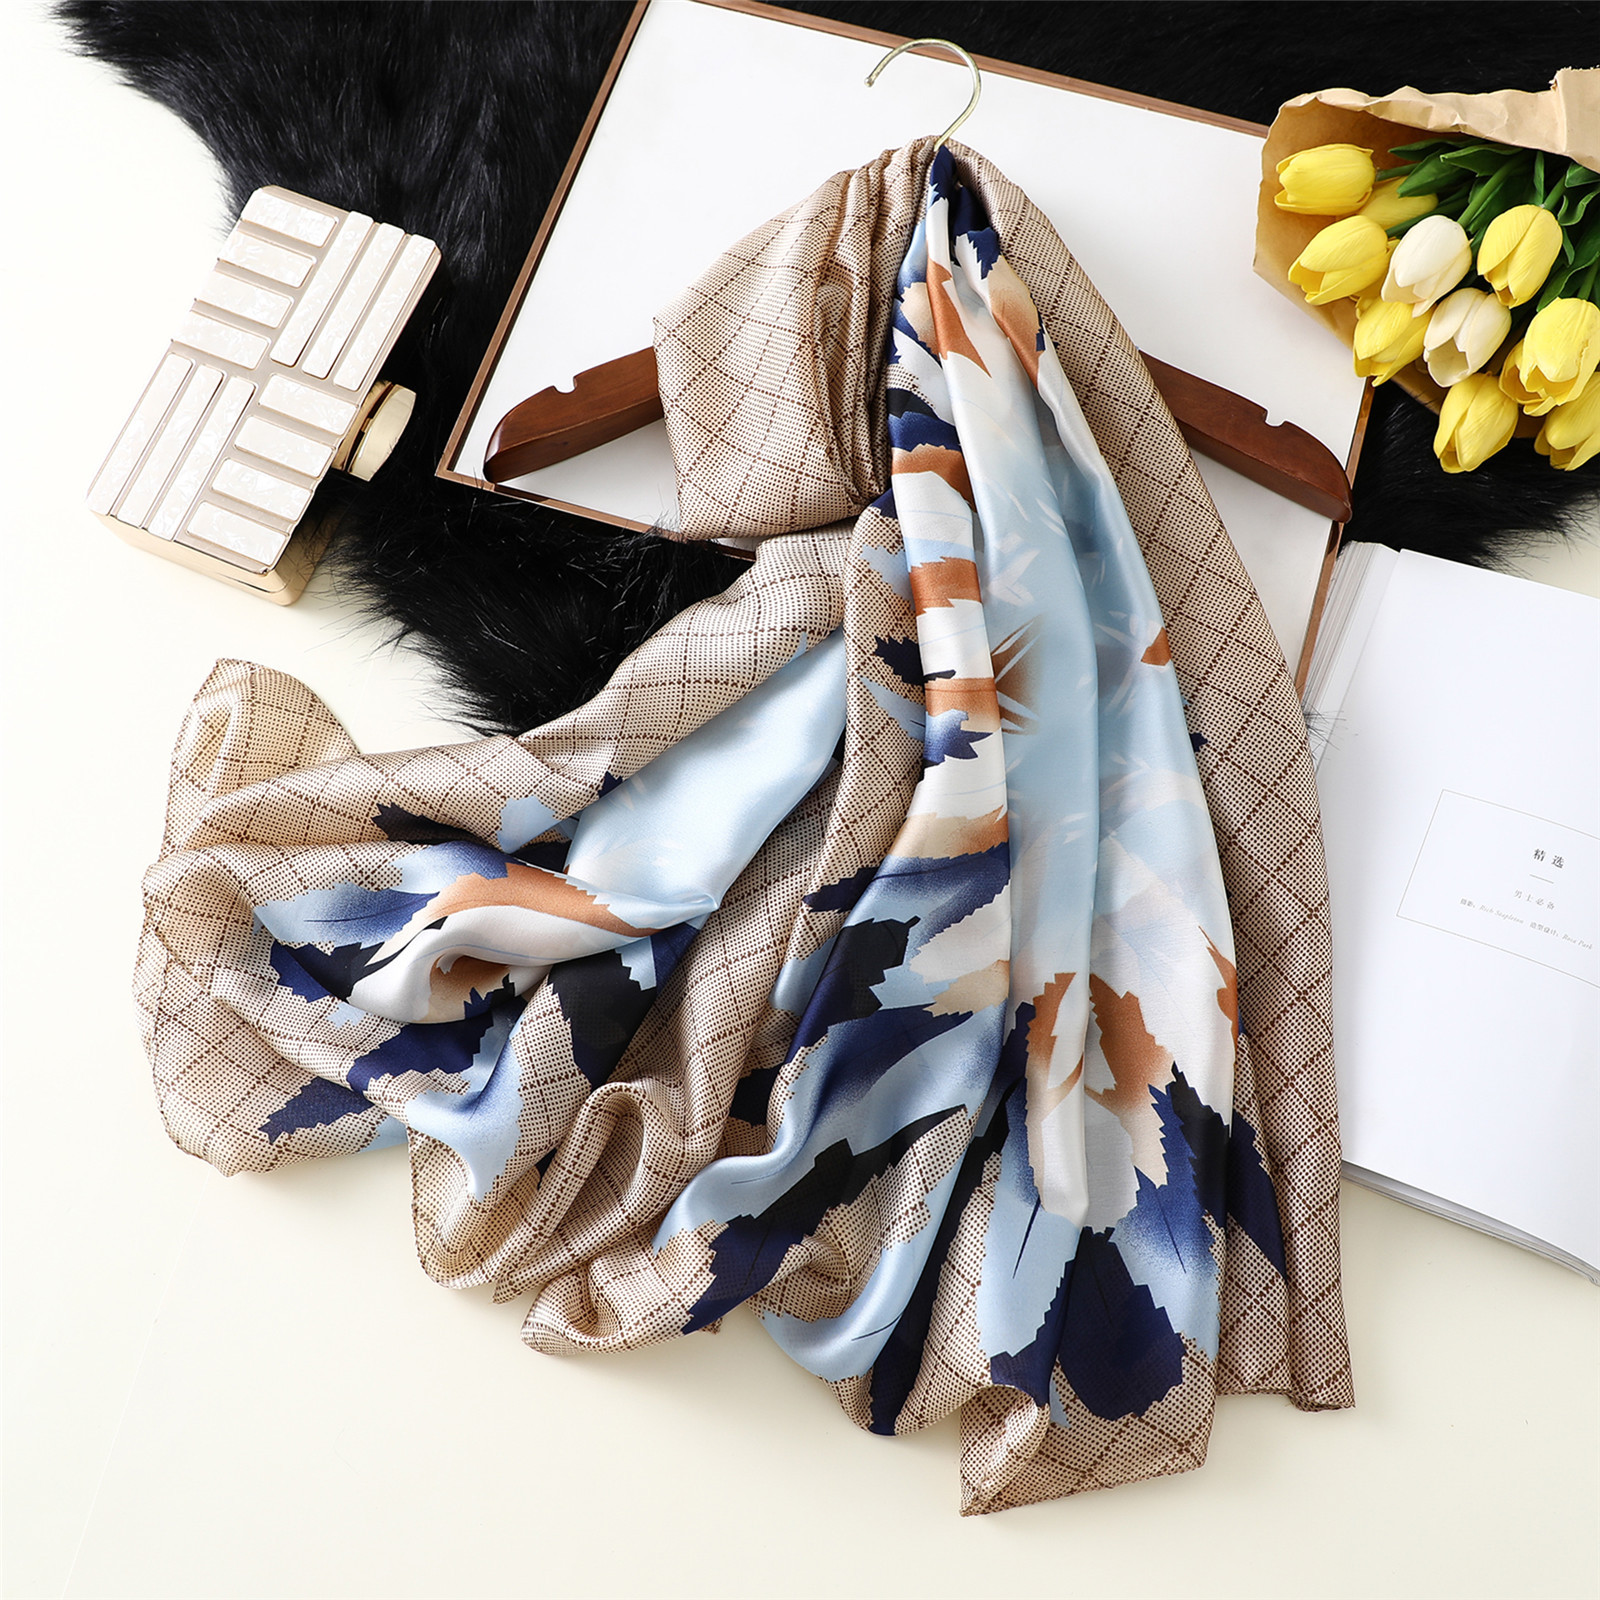 New 2019 Silk   Scarf   Design Female Foulard Hijab Scarfs Summer Lady Shawl Beach Cover - ups   Scarves     Wraps   Neck Headband pashmina